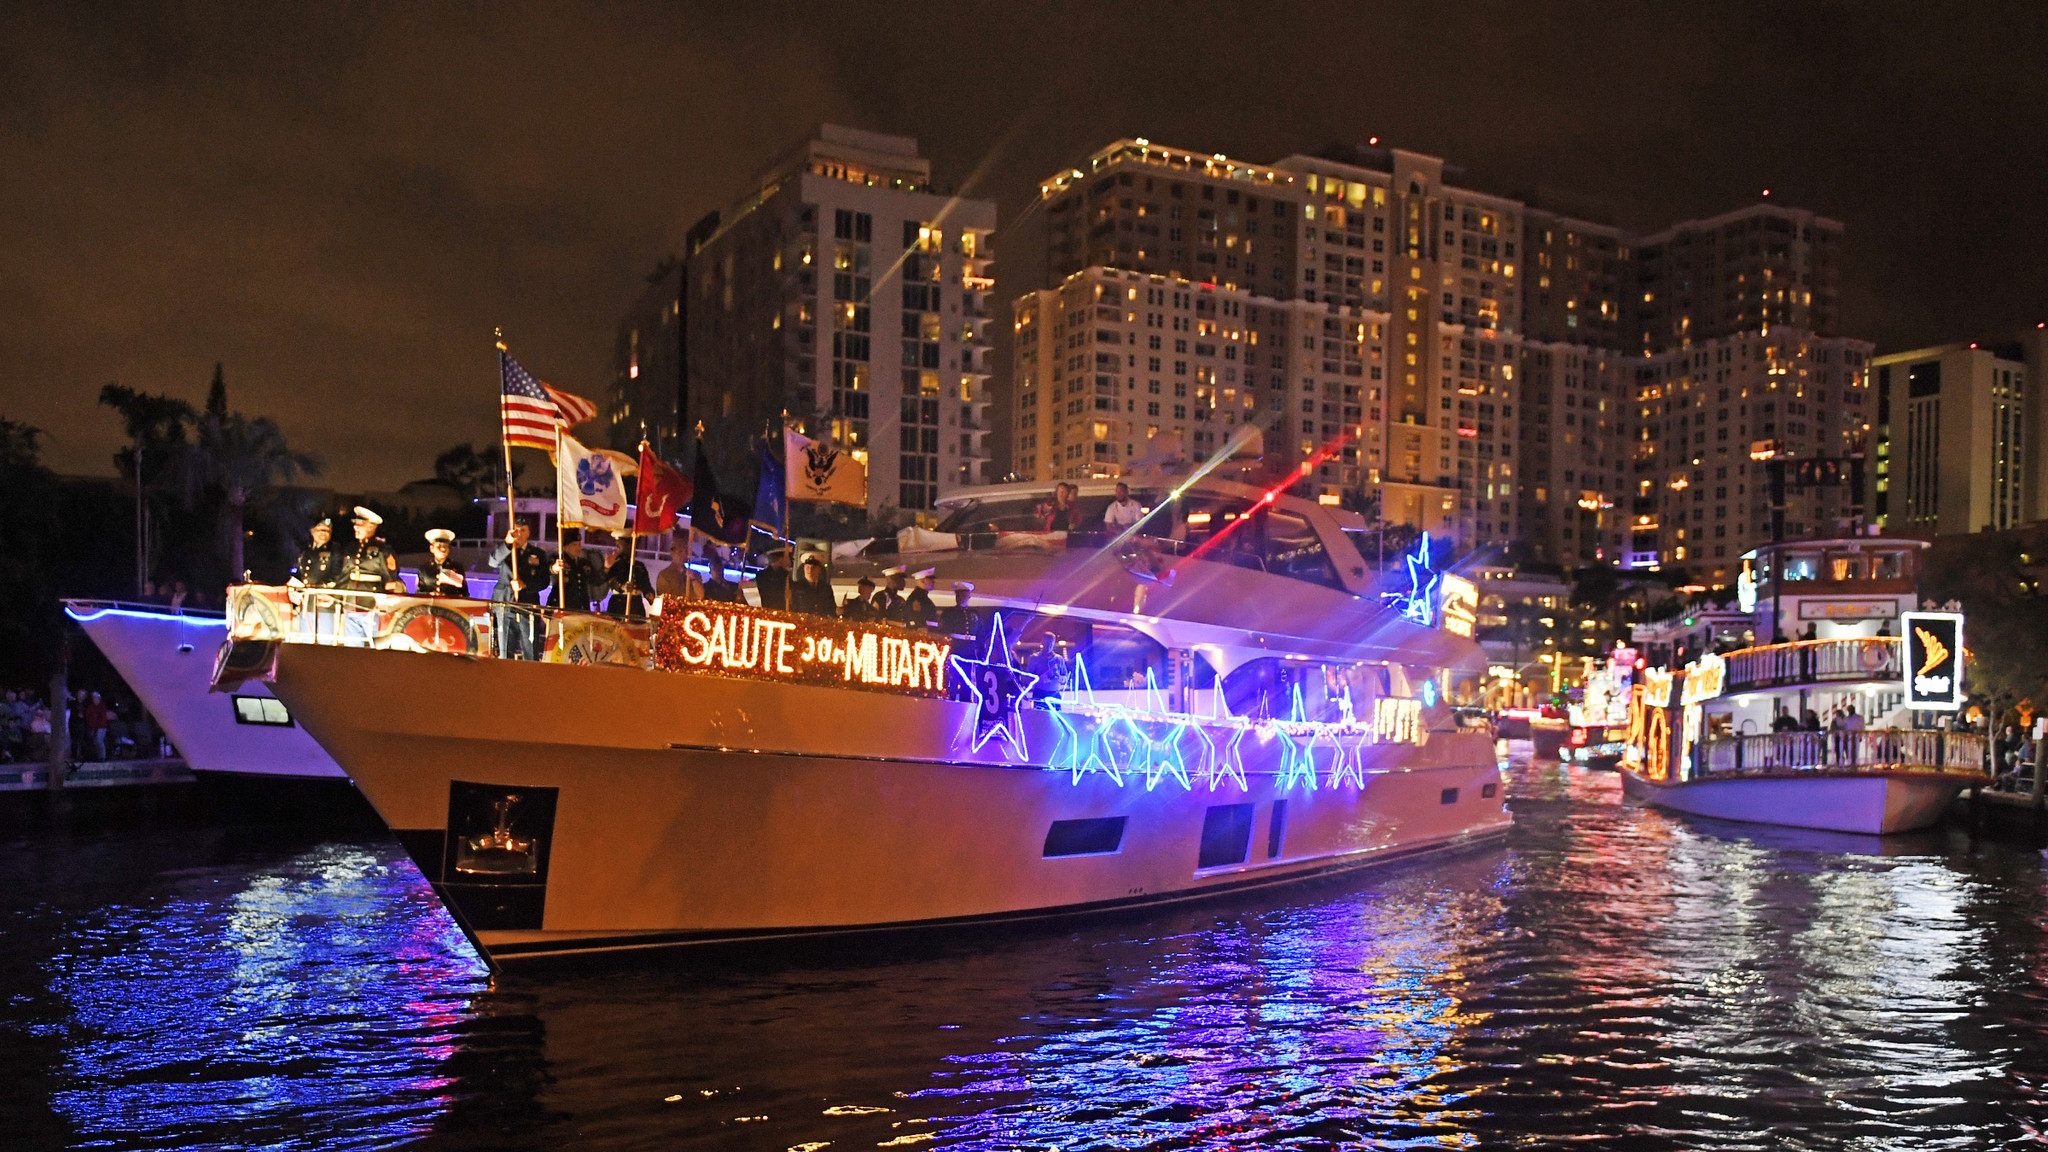 Fort Lauderdale Christmas Boat Parade.Deck The Hulls Winterfest Boat Parade Sails Through Fort